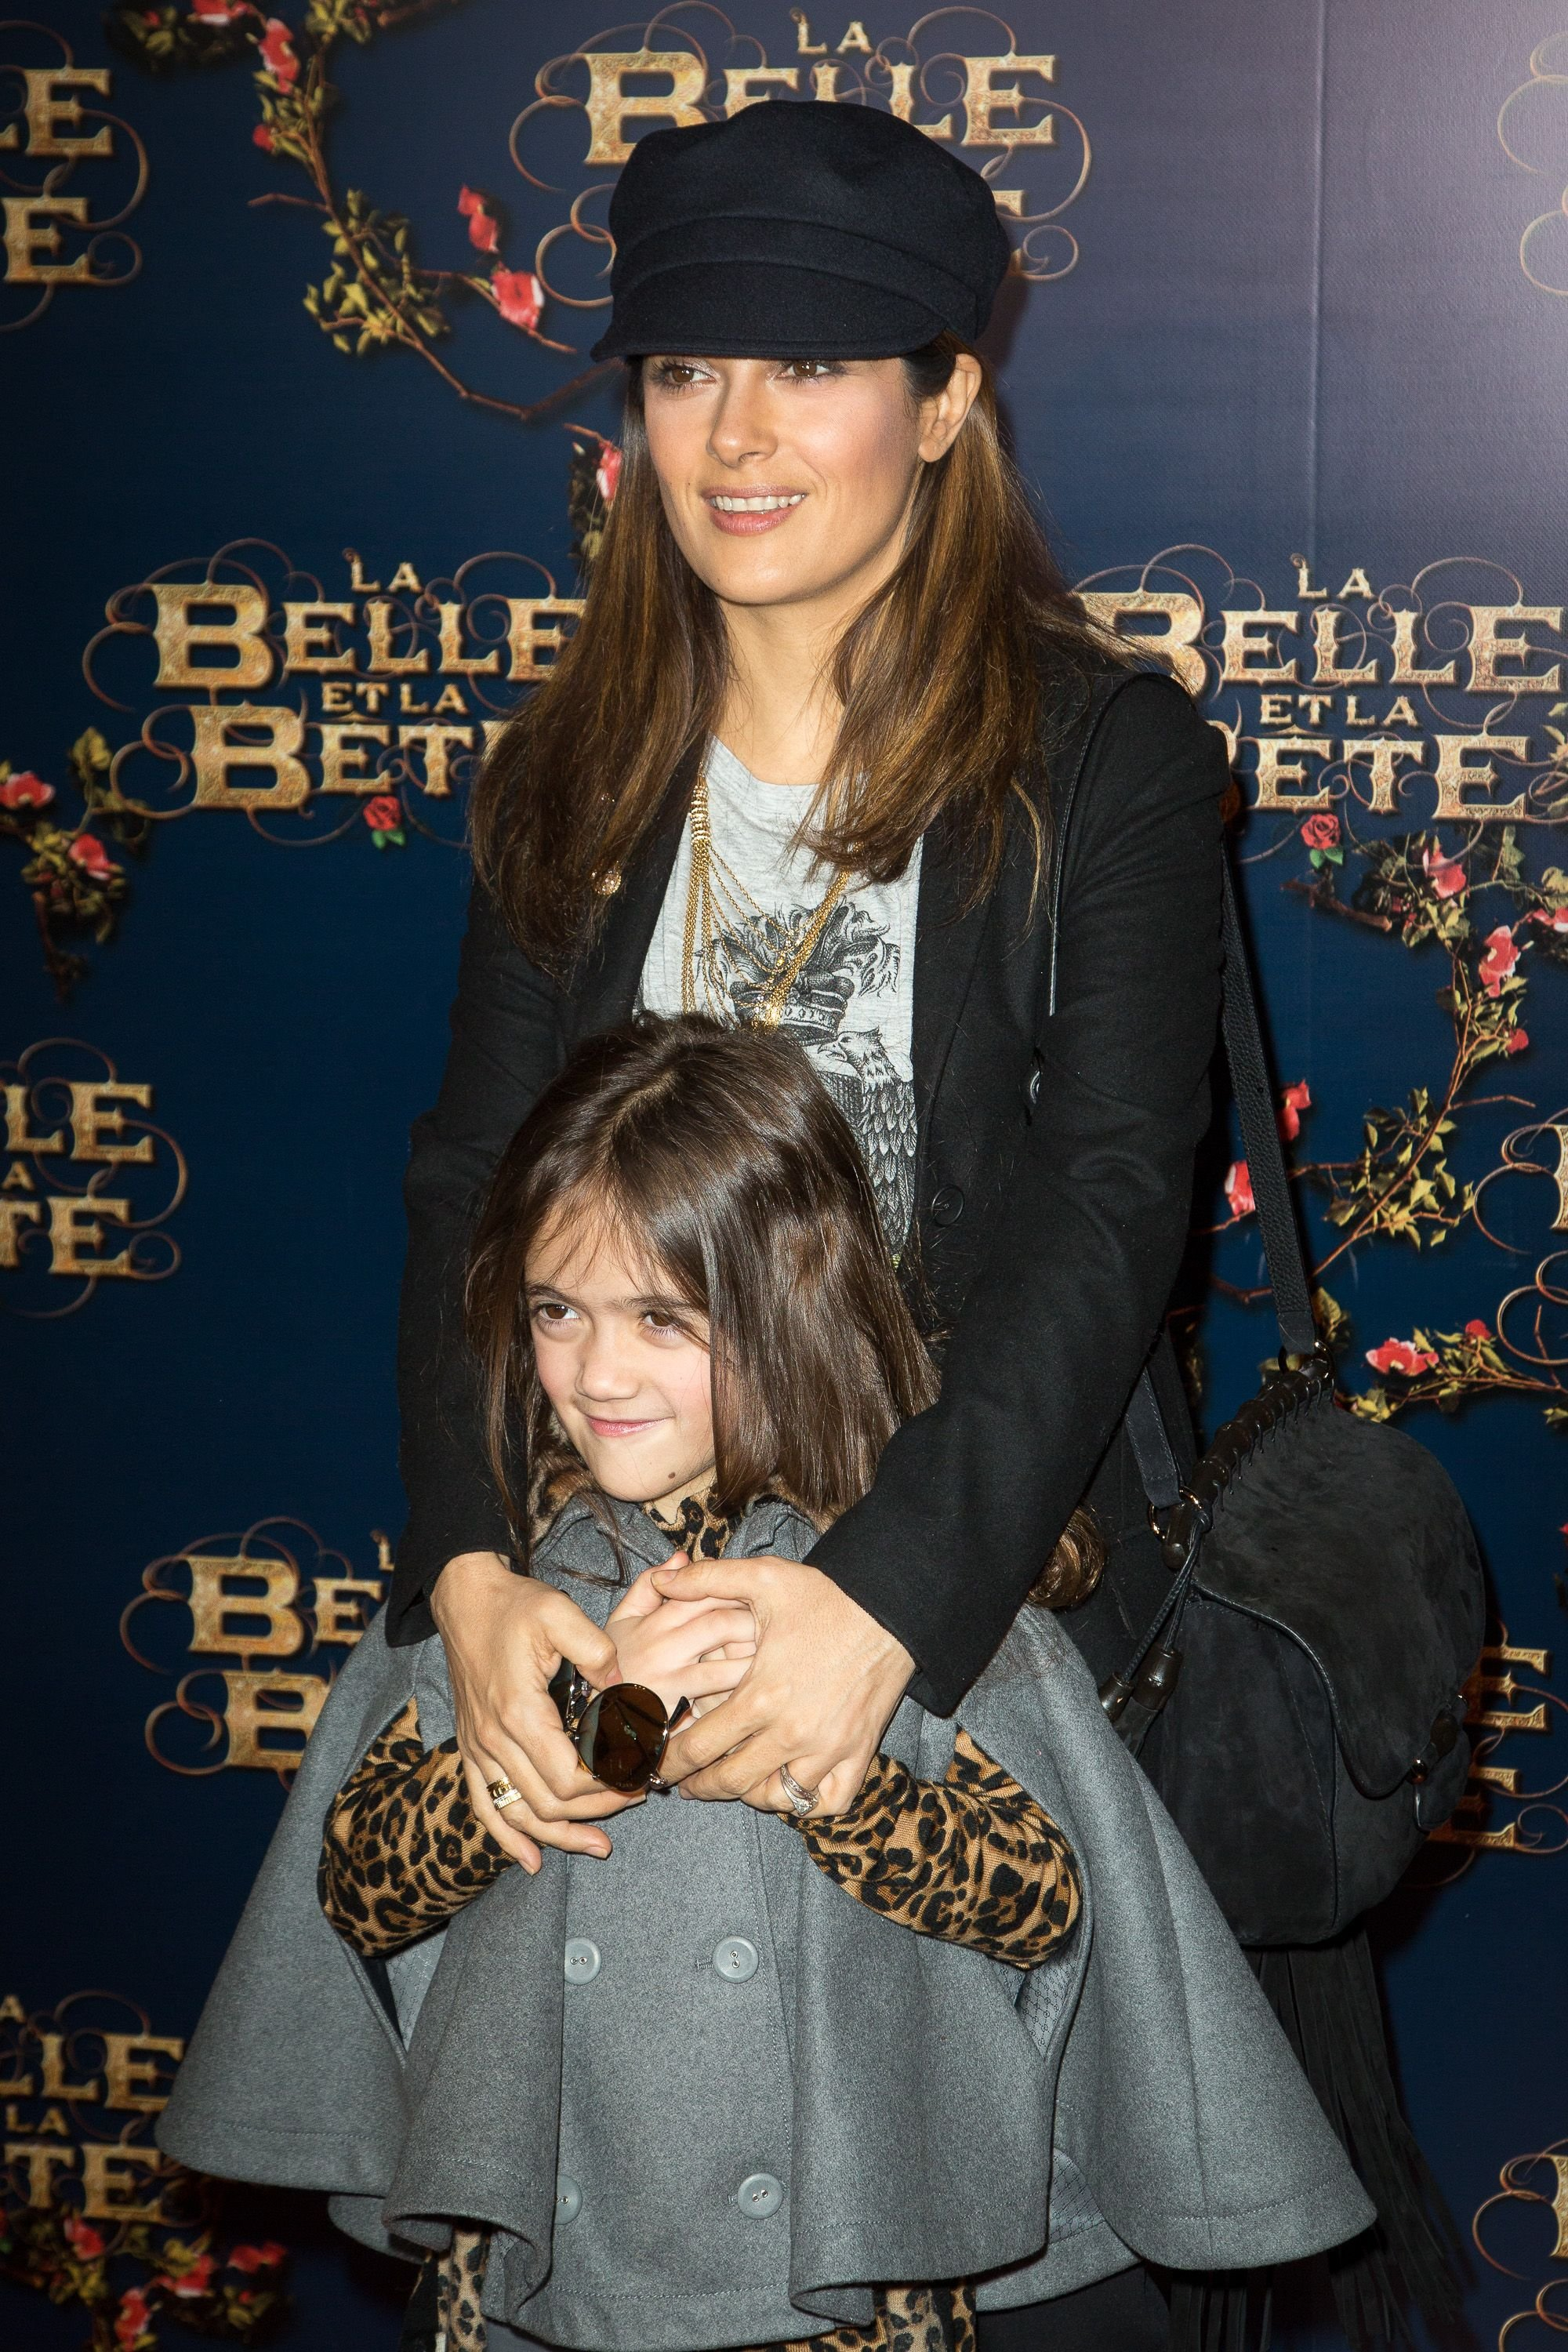 """Salma Hayek and daughter Valentina Paloma Pinault at """"The Beauty and the Beast"""" premiere in Paris, France in 2014 